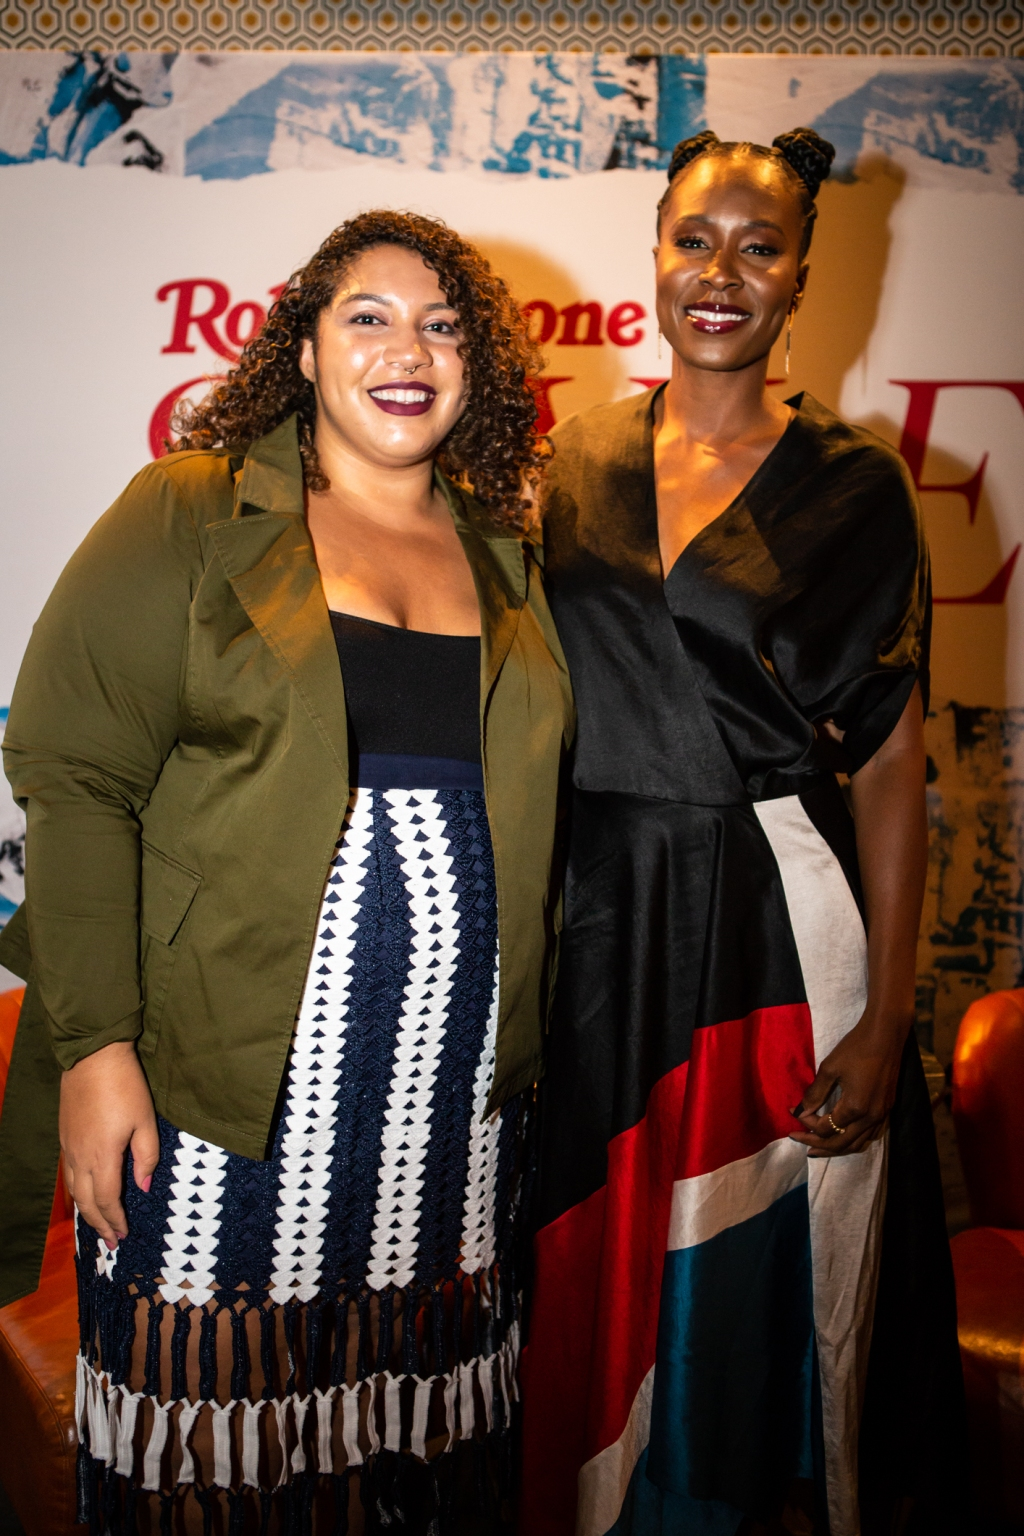 Actress Sydelle Noel (right) from 'GLOW' TV series with Rolling Stone's Brittany Spanos.